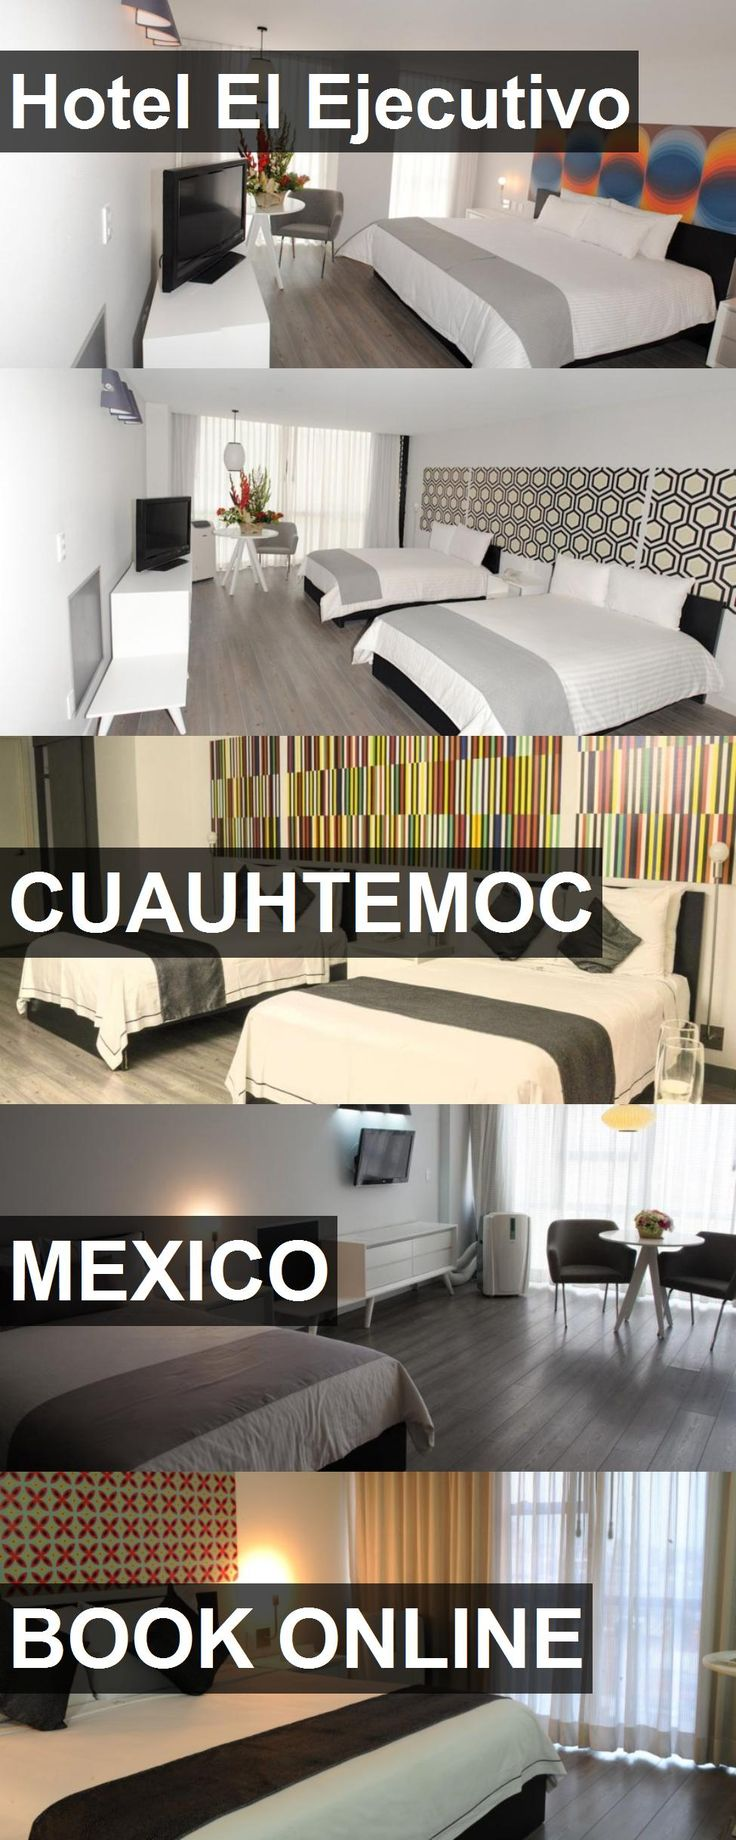 Hotel El Ejecutivo in Cuauhtemoc, Mexico. For more information, photos, reviews and best prices please follow the link. #Mexico #Cuauhtemoc #travel #vacation #hotel